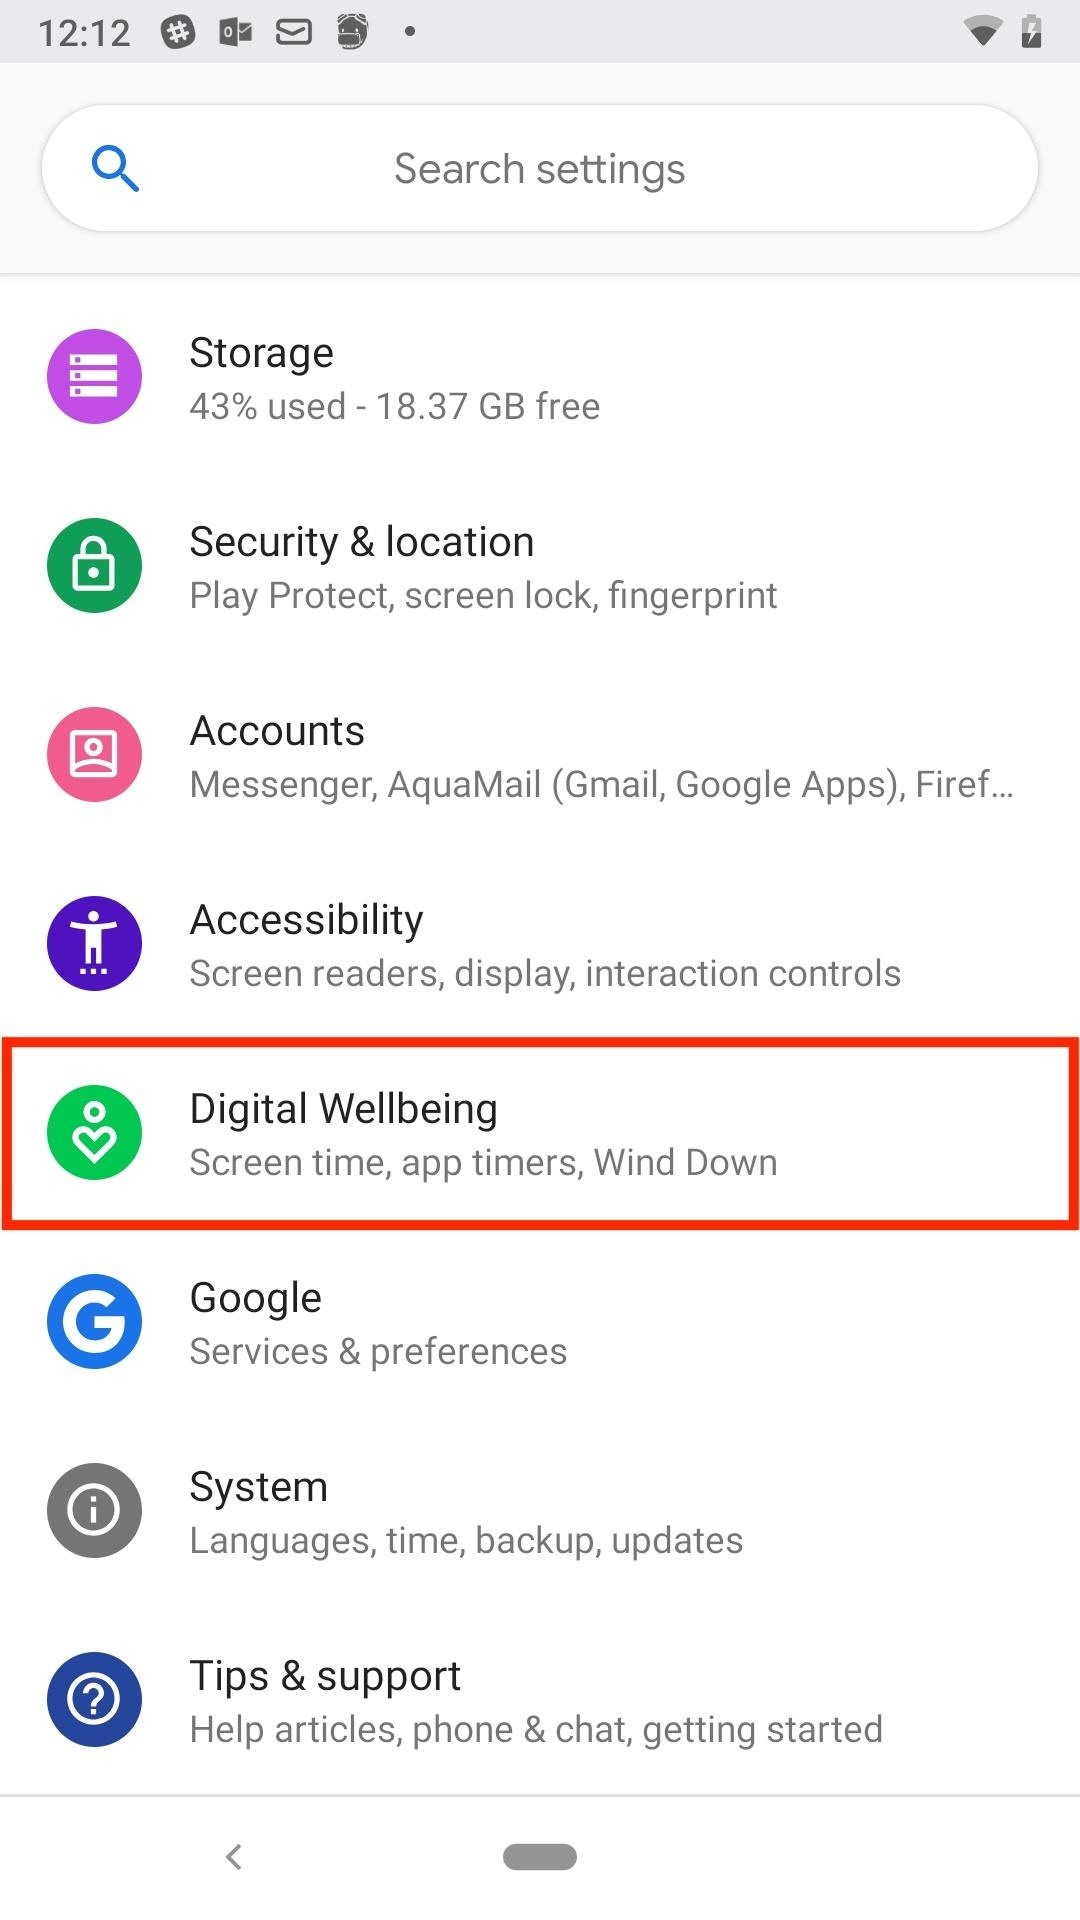 How to Set Up Digital Wellbeing in Android Pie to Curb Your Smartphone Usage